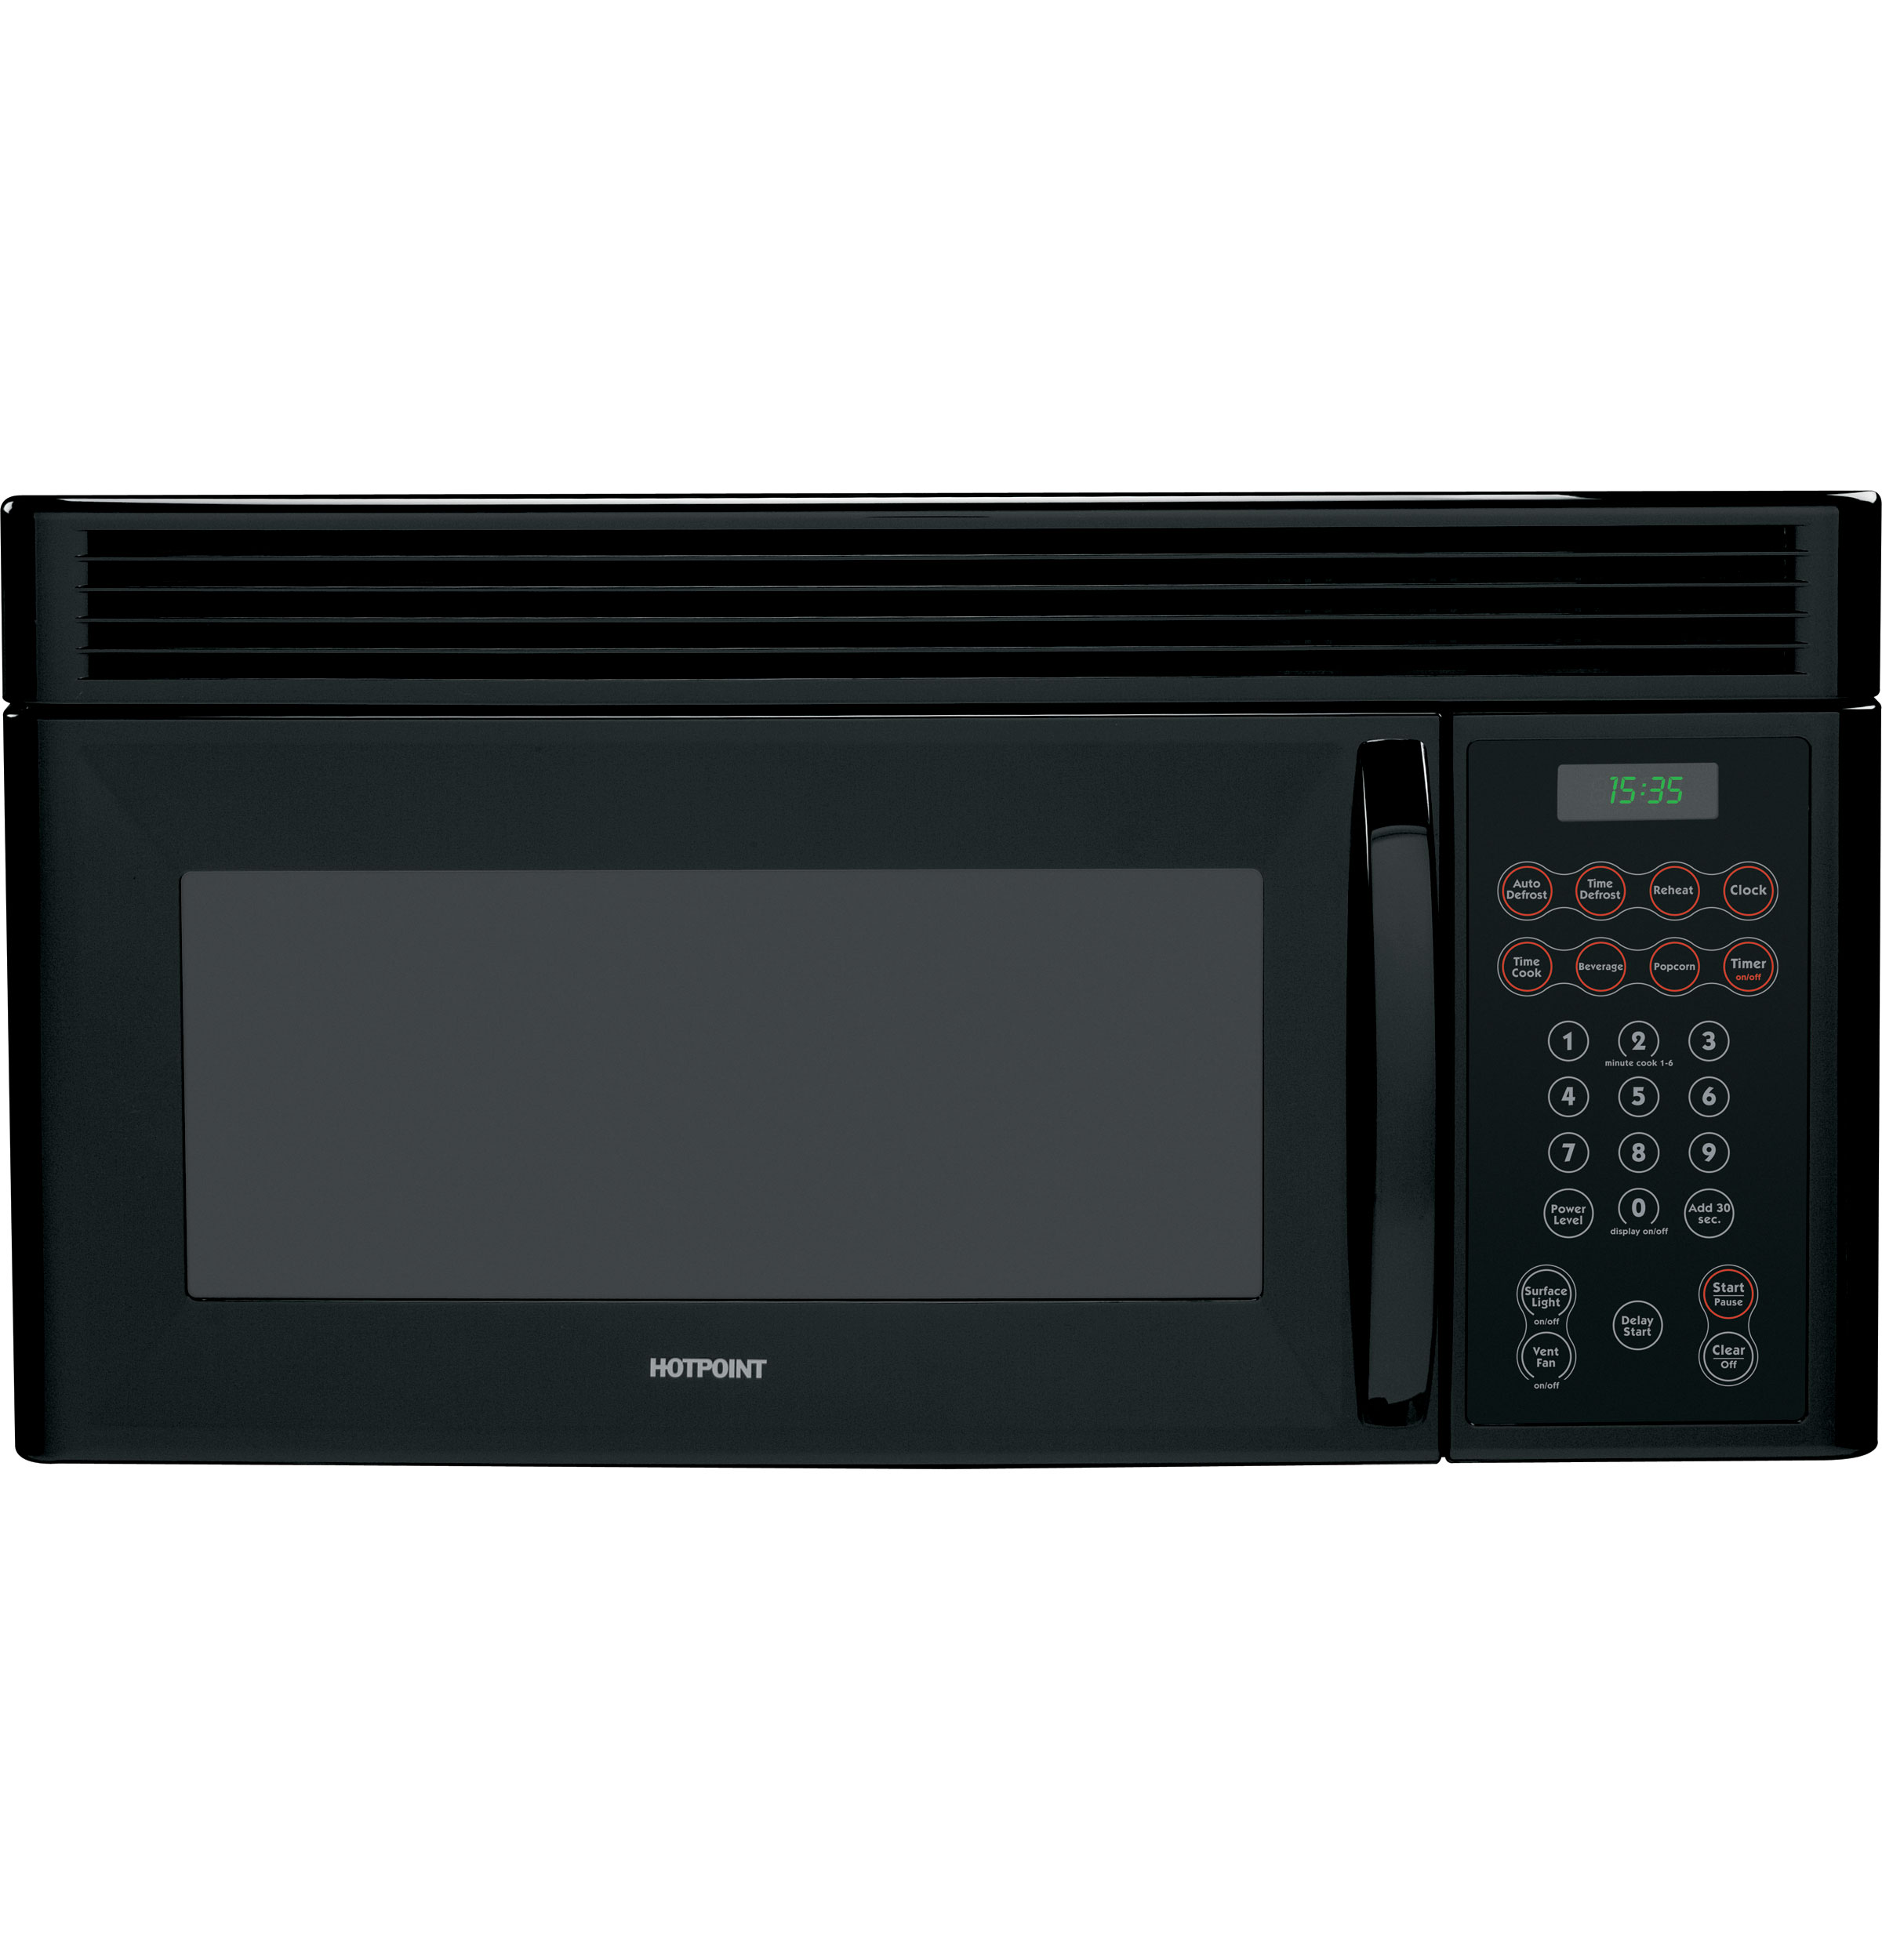 GE HOTPOINT 1.6 CU. FT. OVER-THE-RANGE MICROWAVE OVEN BLACK